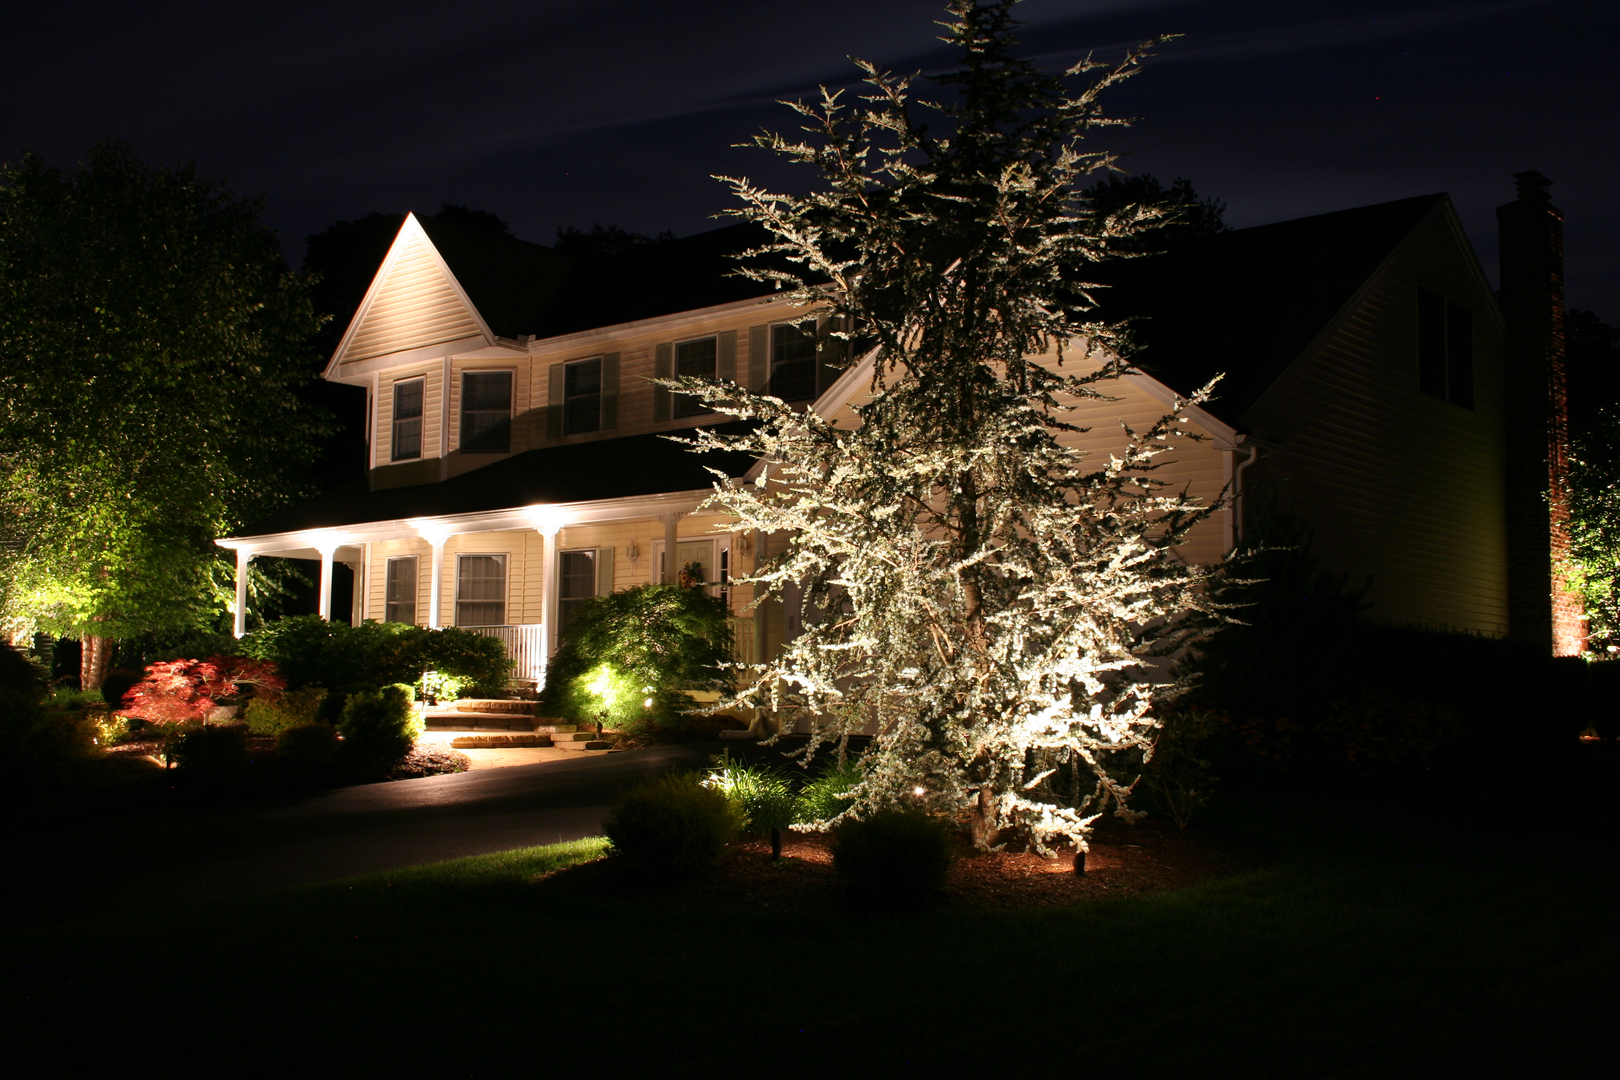 Landscape Lighting Design Ideas unique landscape lighting Allure Design Landscape Lighting